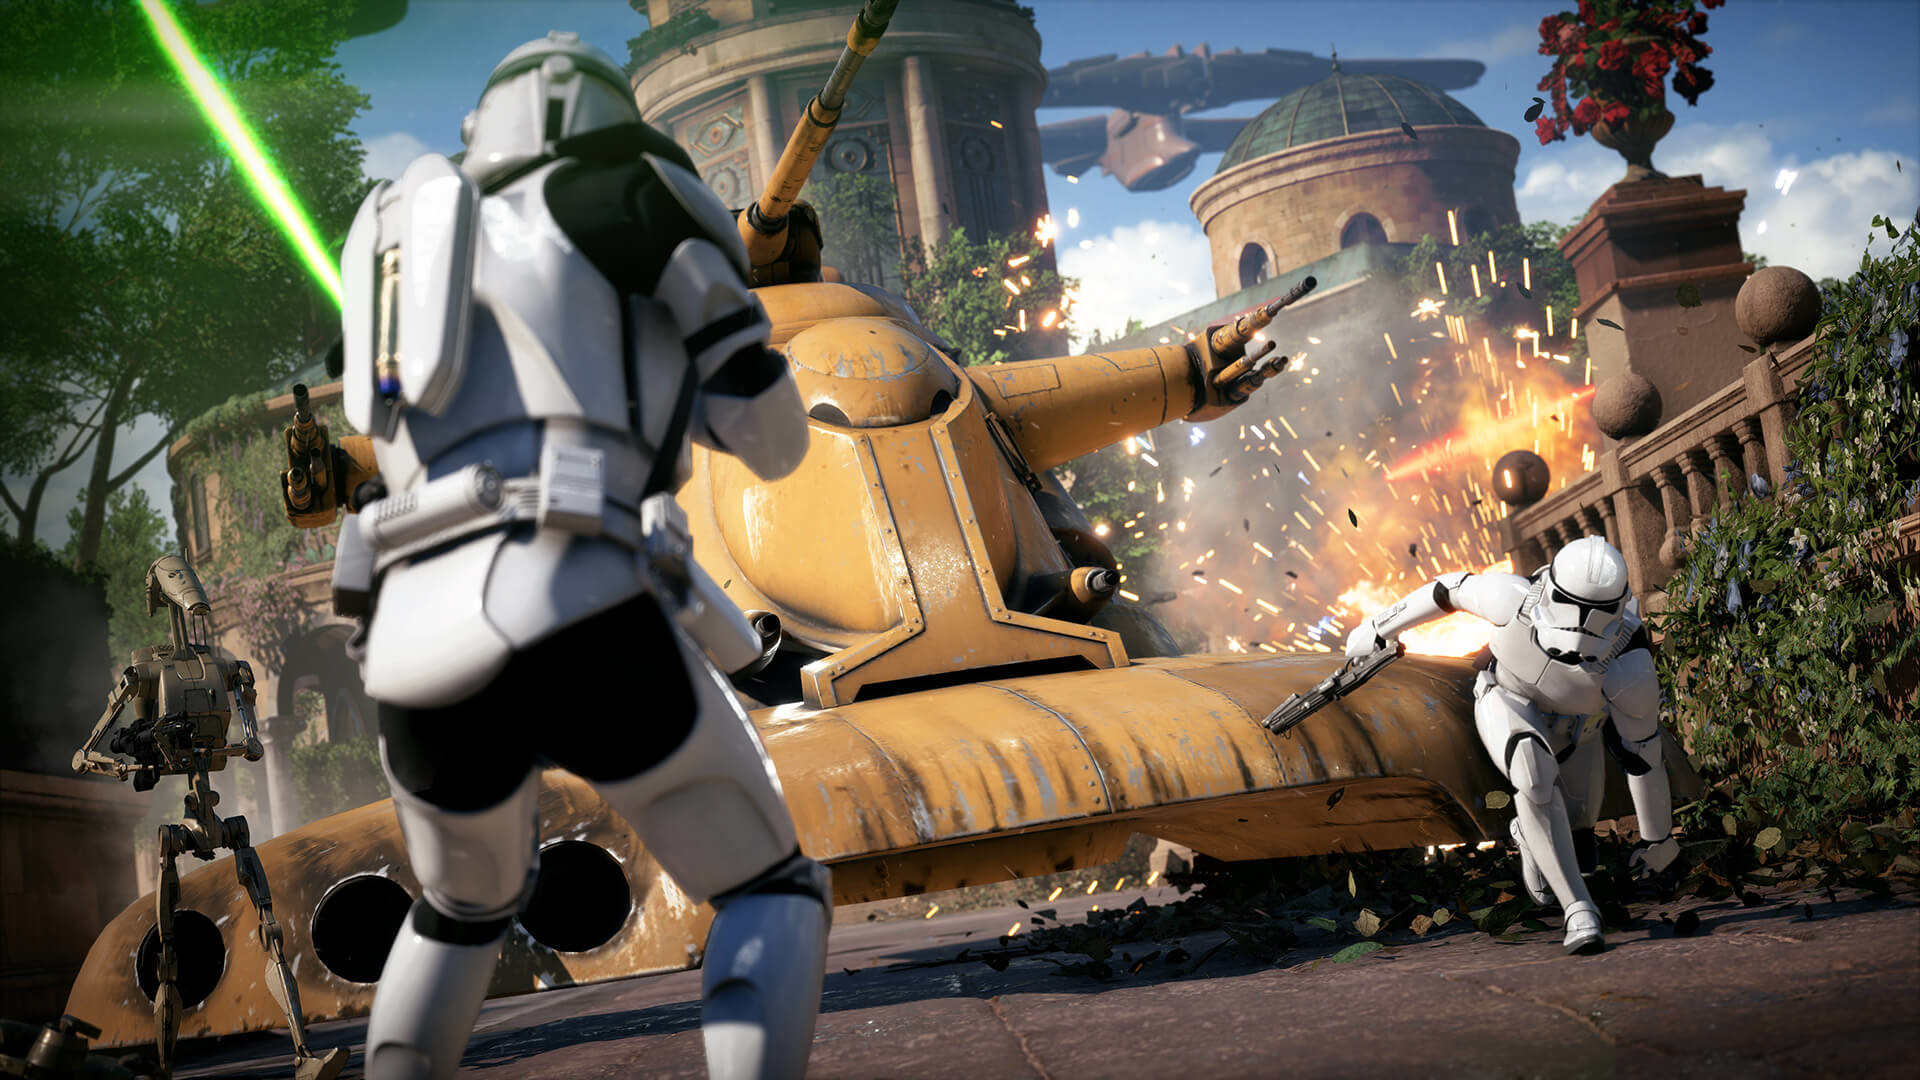 Star Wars Battlefront II Multiplayer Beta Coming in October